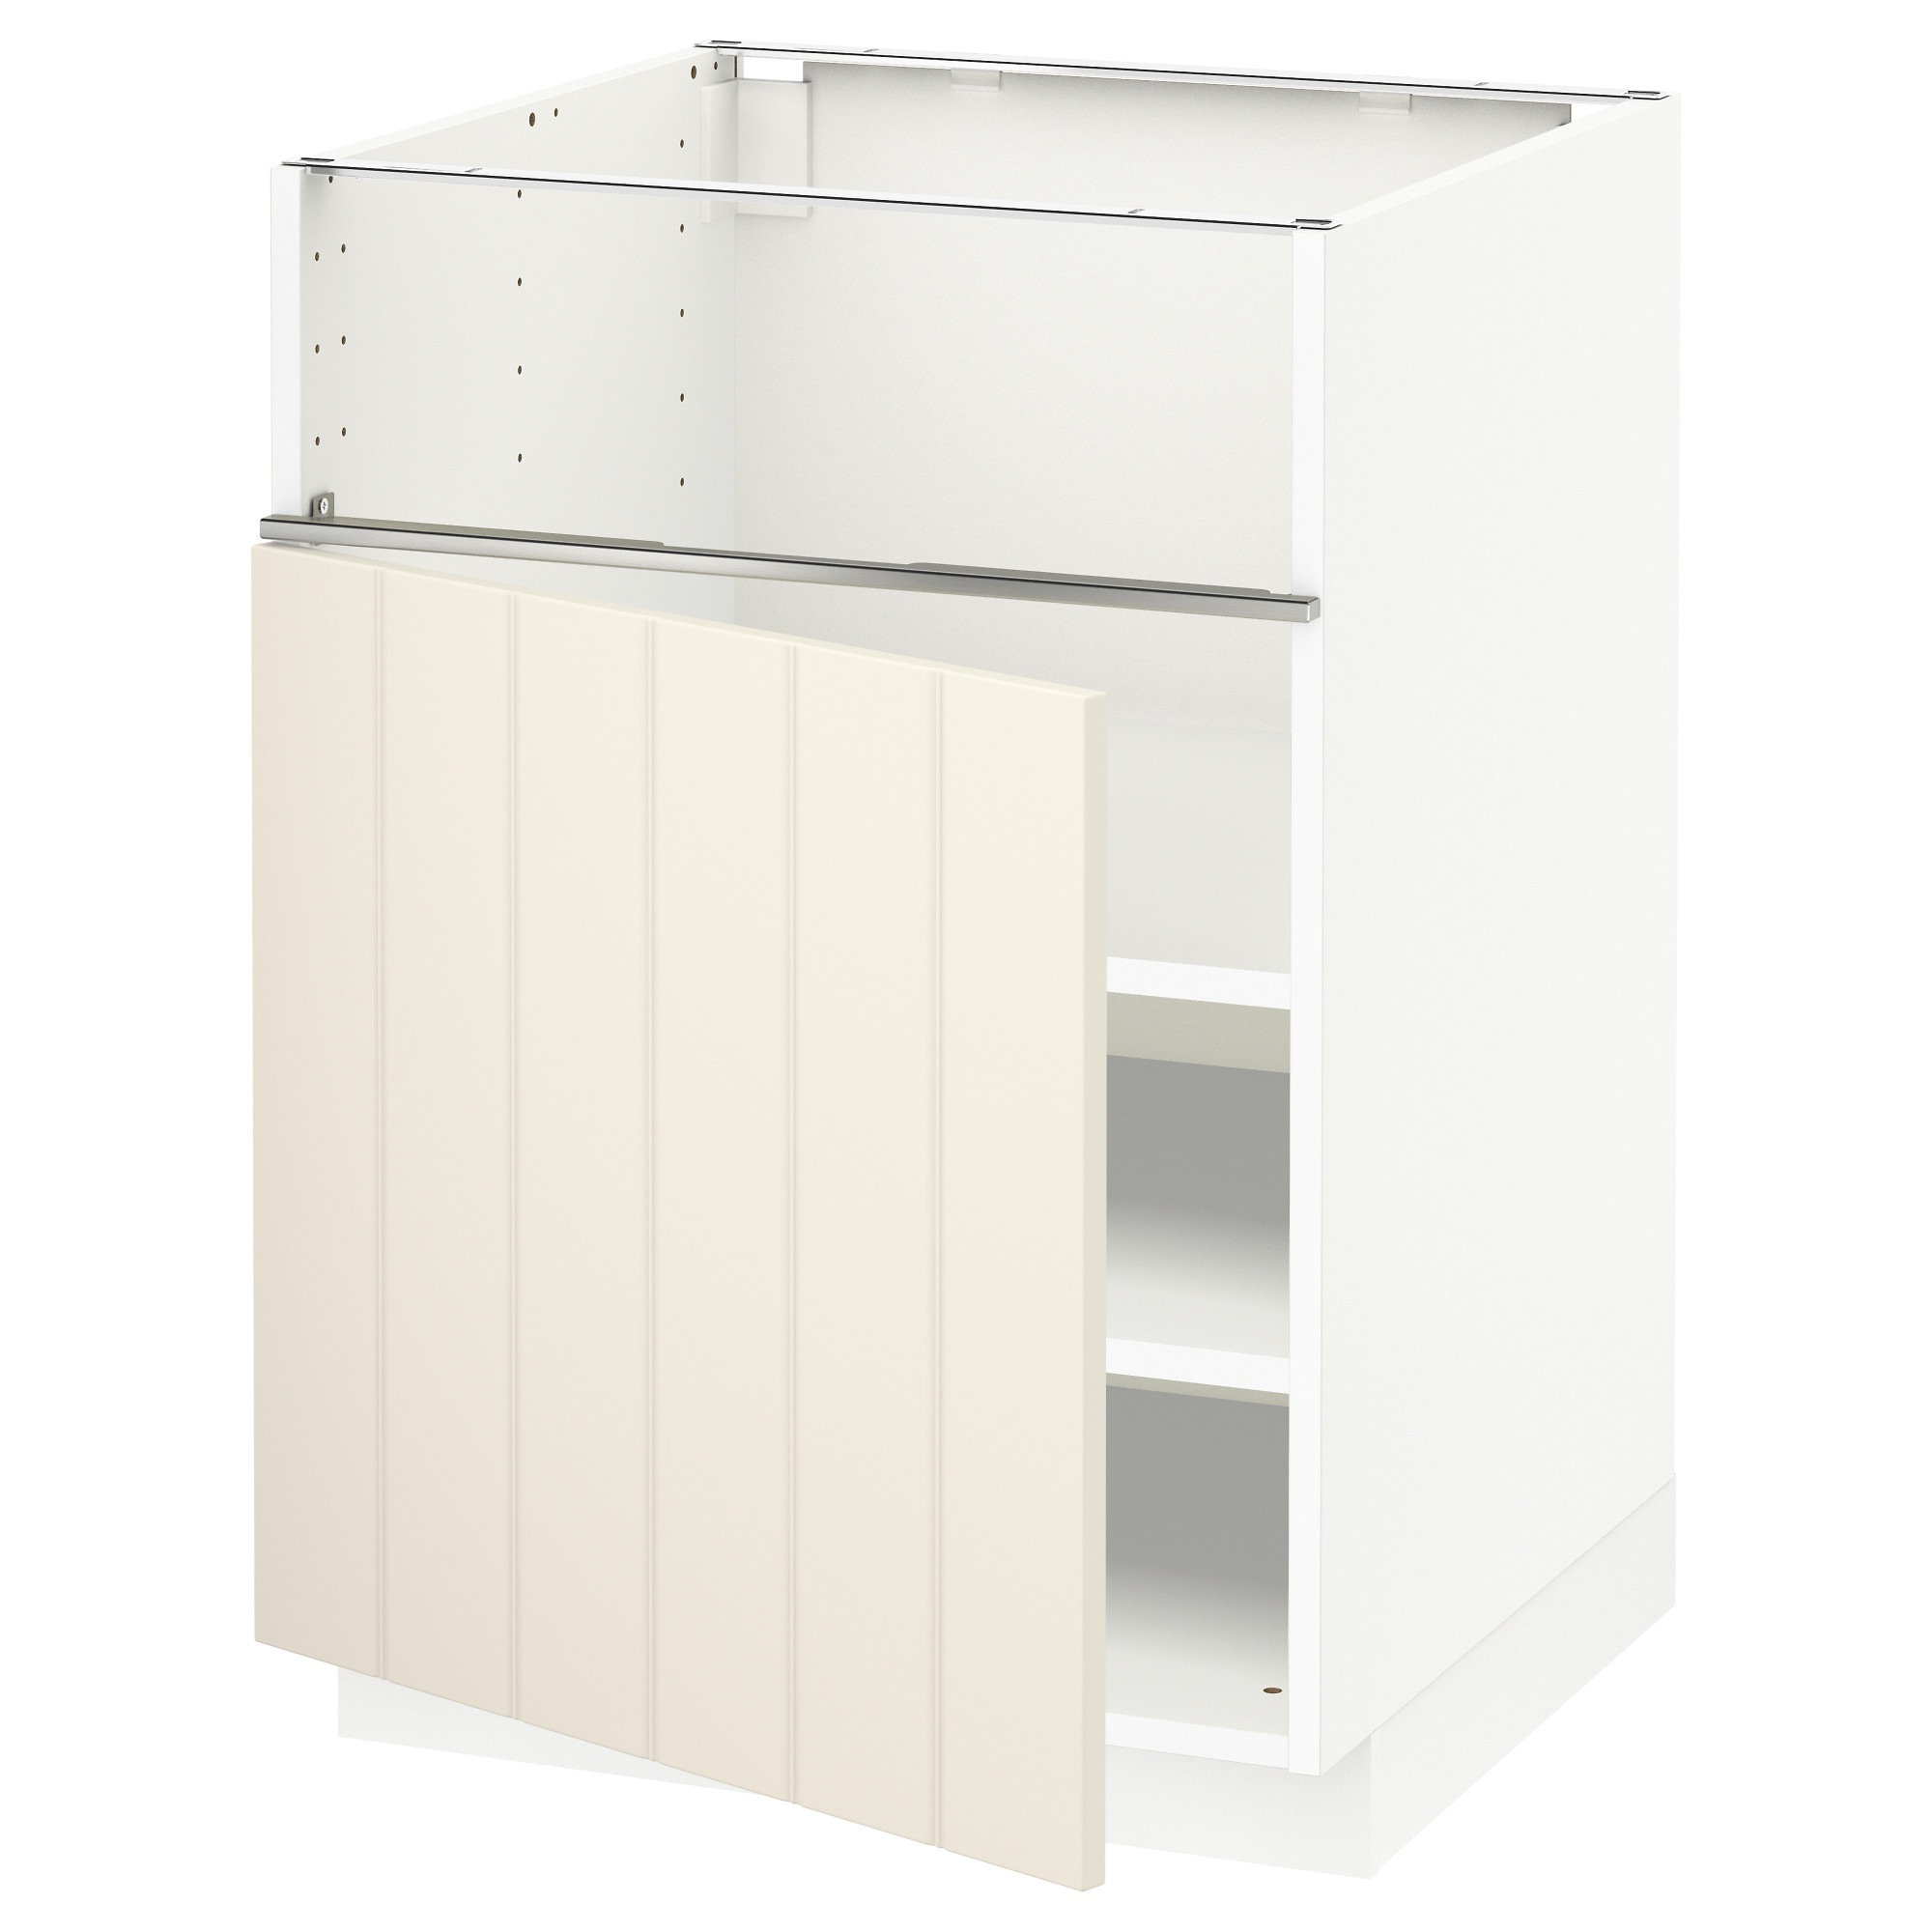 Ikea Sävedal Metod Base Cb F Hob Fish Grill Door White Sävedal White